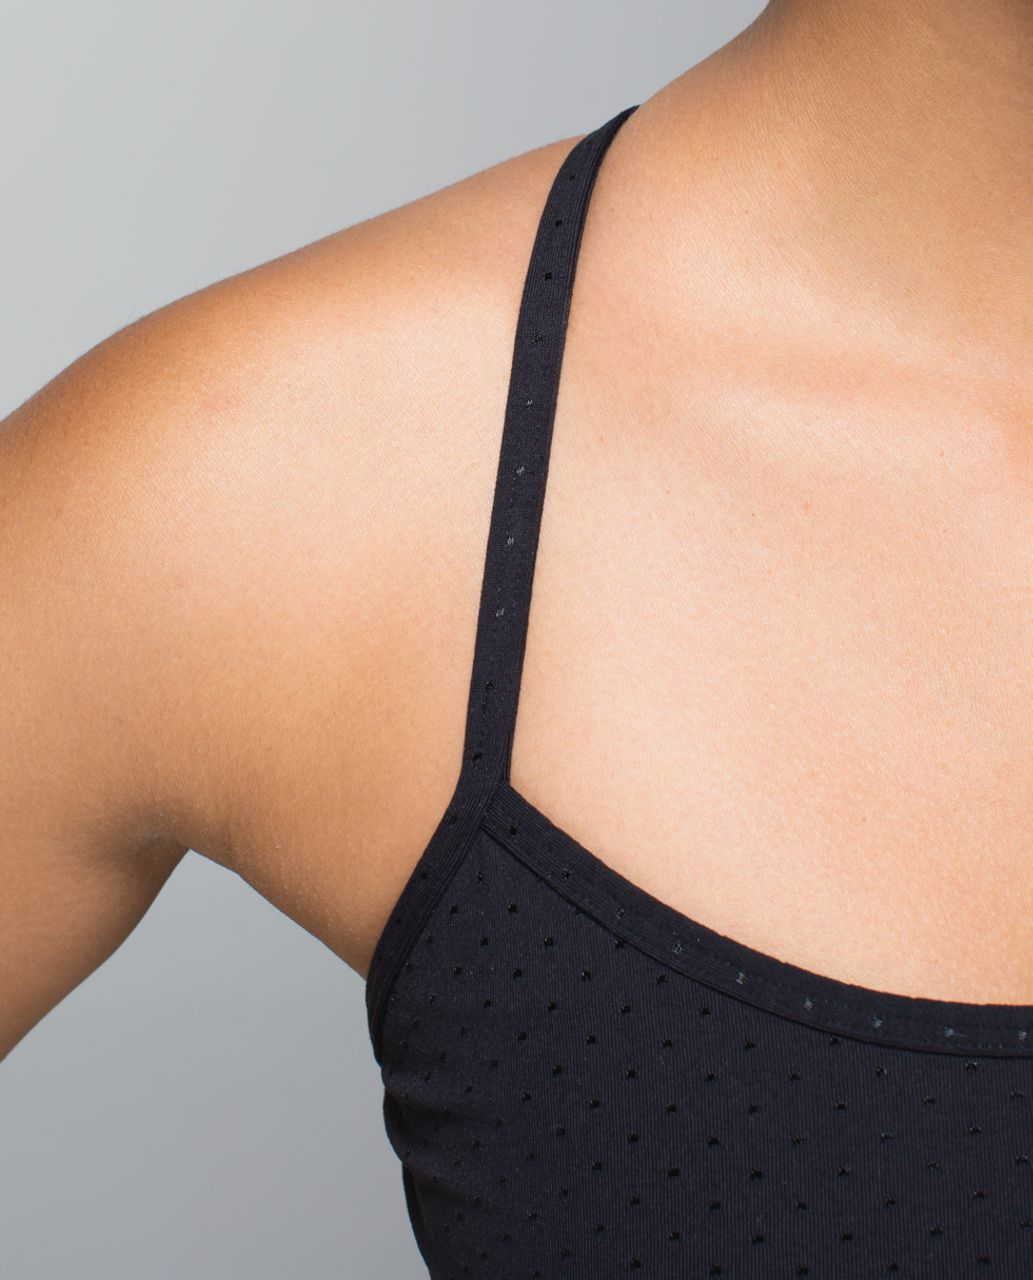 Lululemon Power Y Tank *Luon - Shine Dot Black